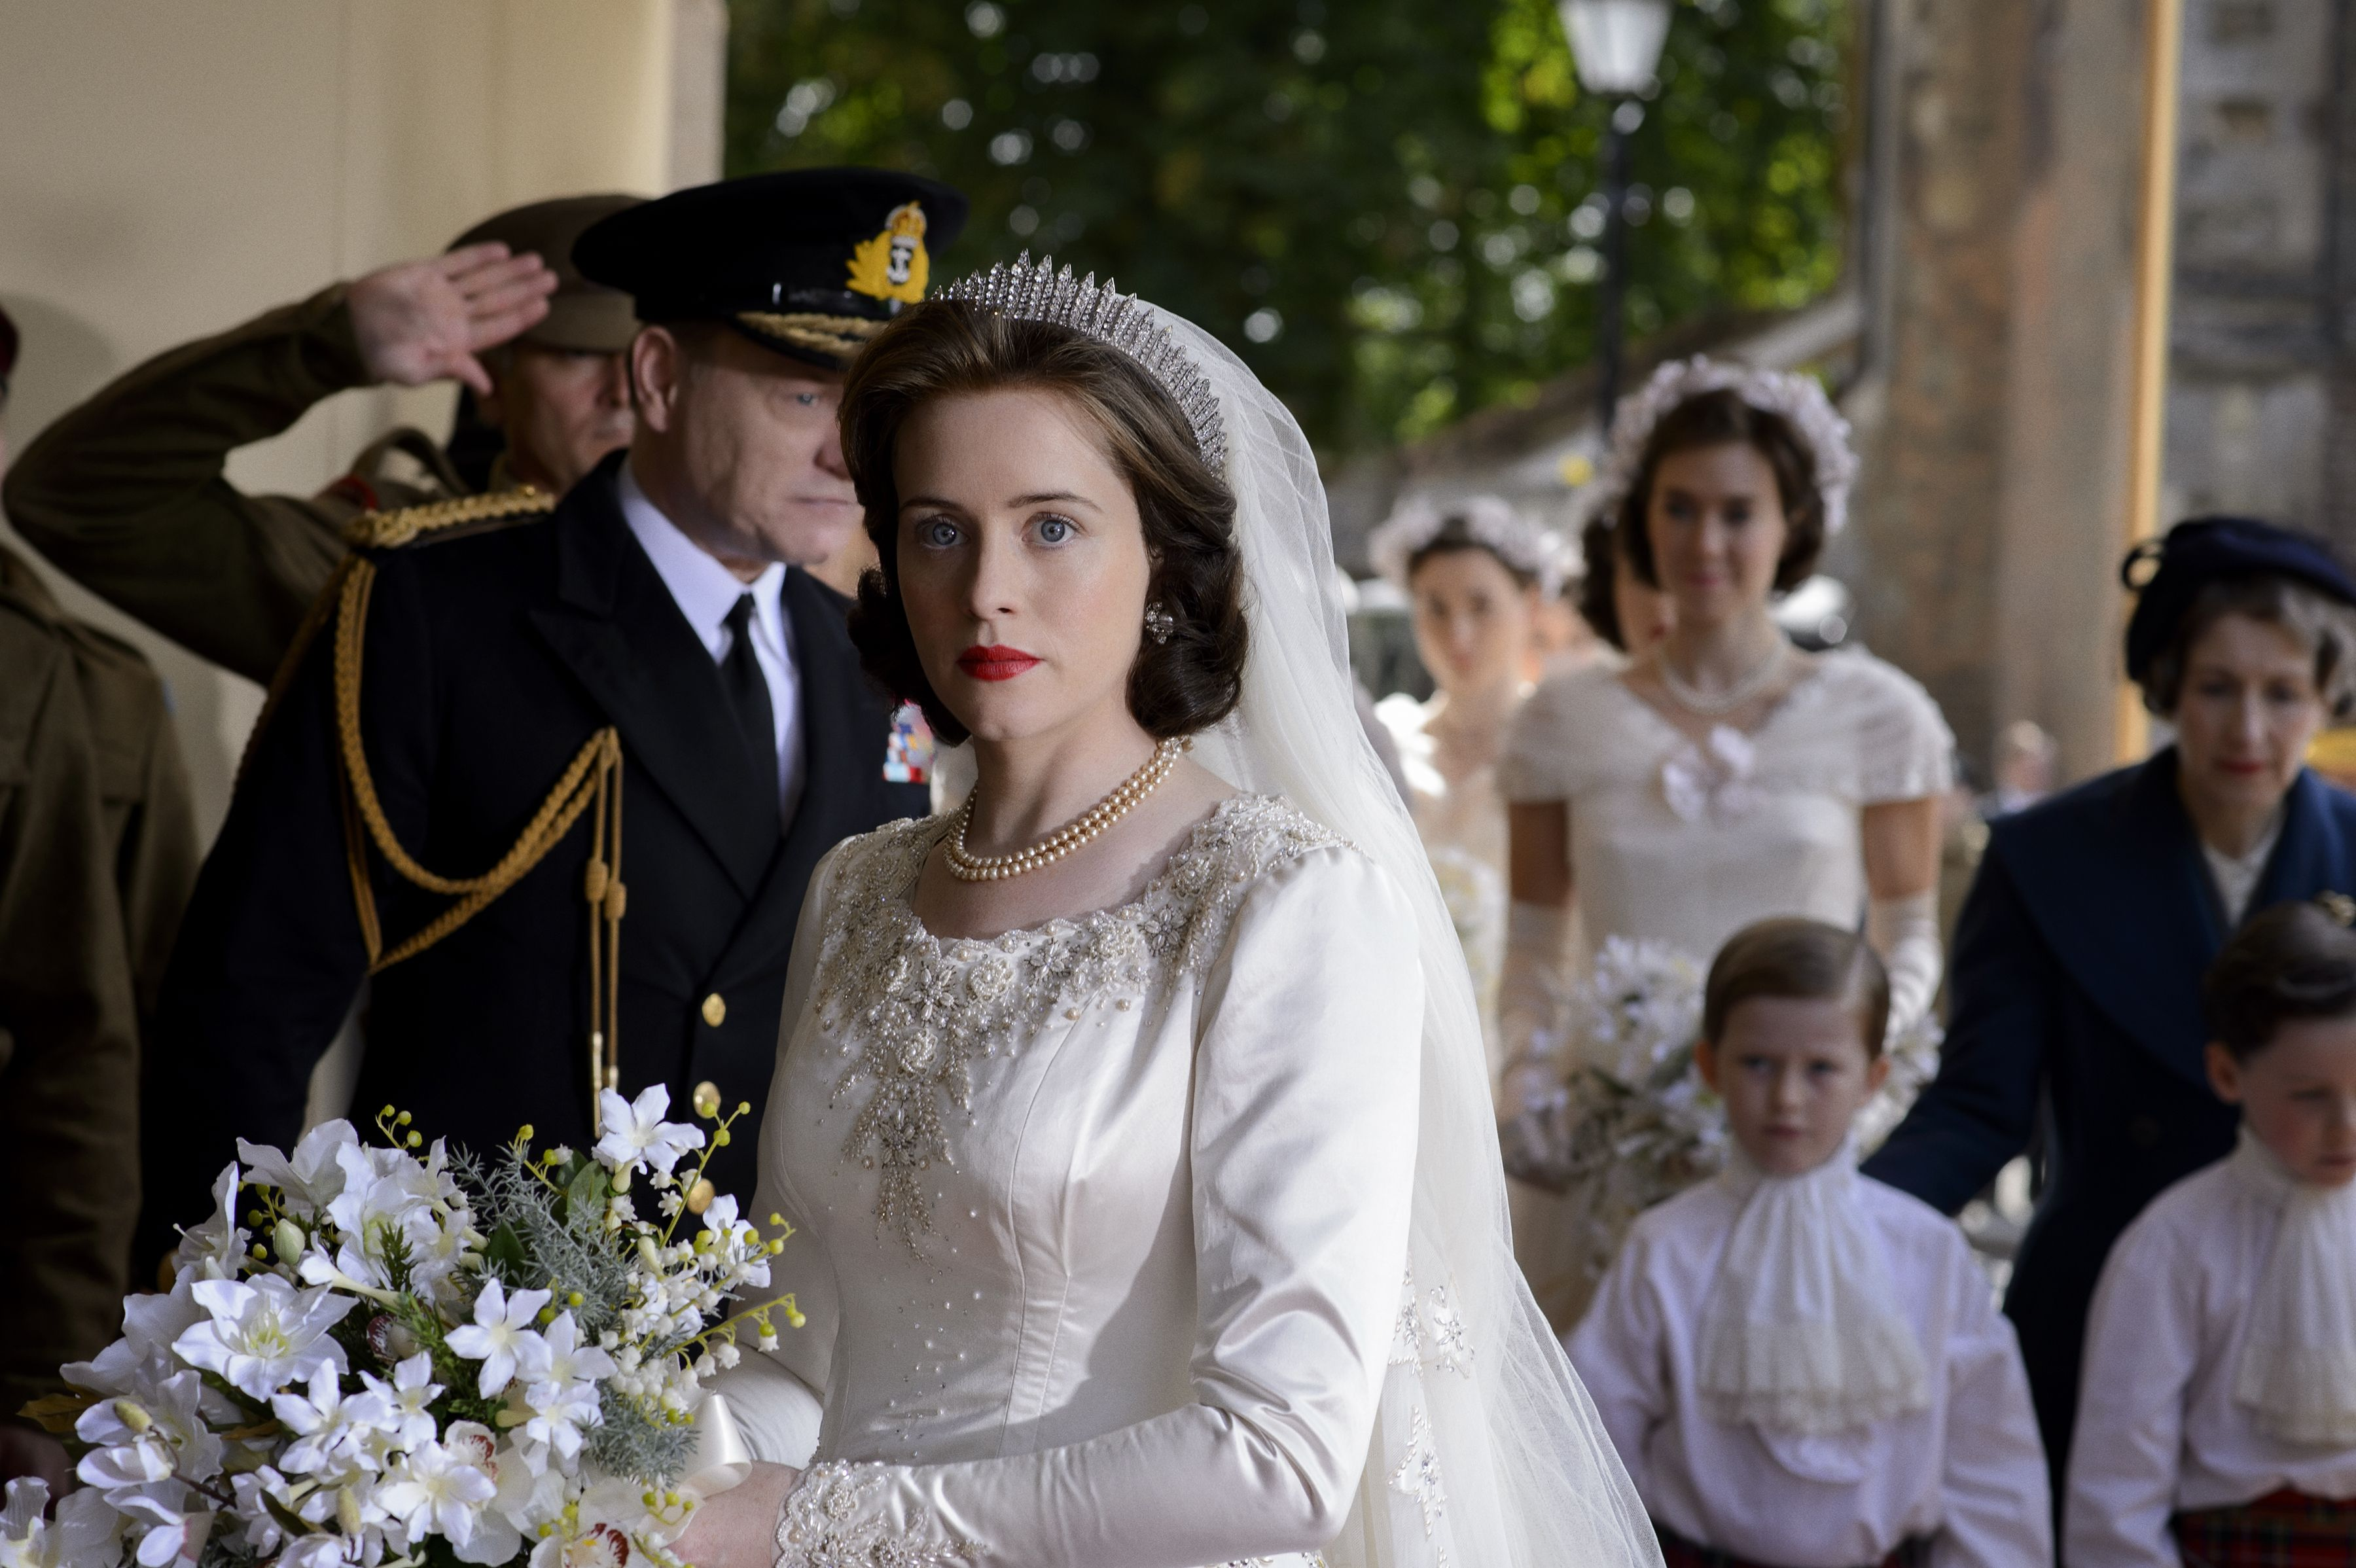 The Crown Season 1 see the stunning costumes and the two